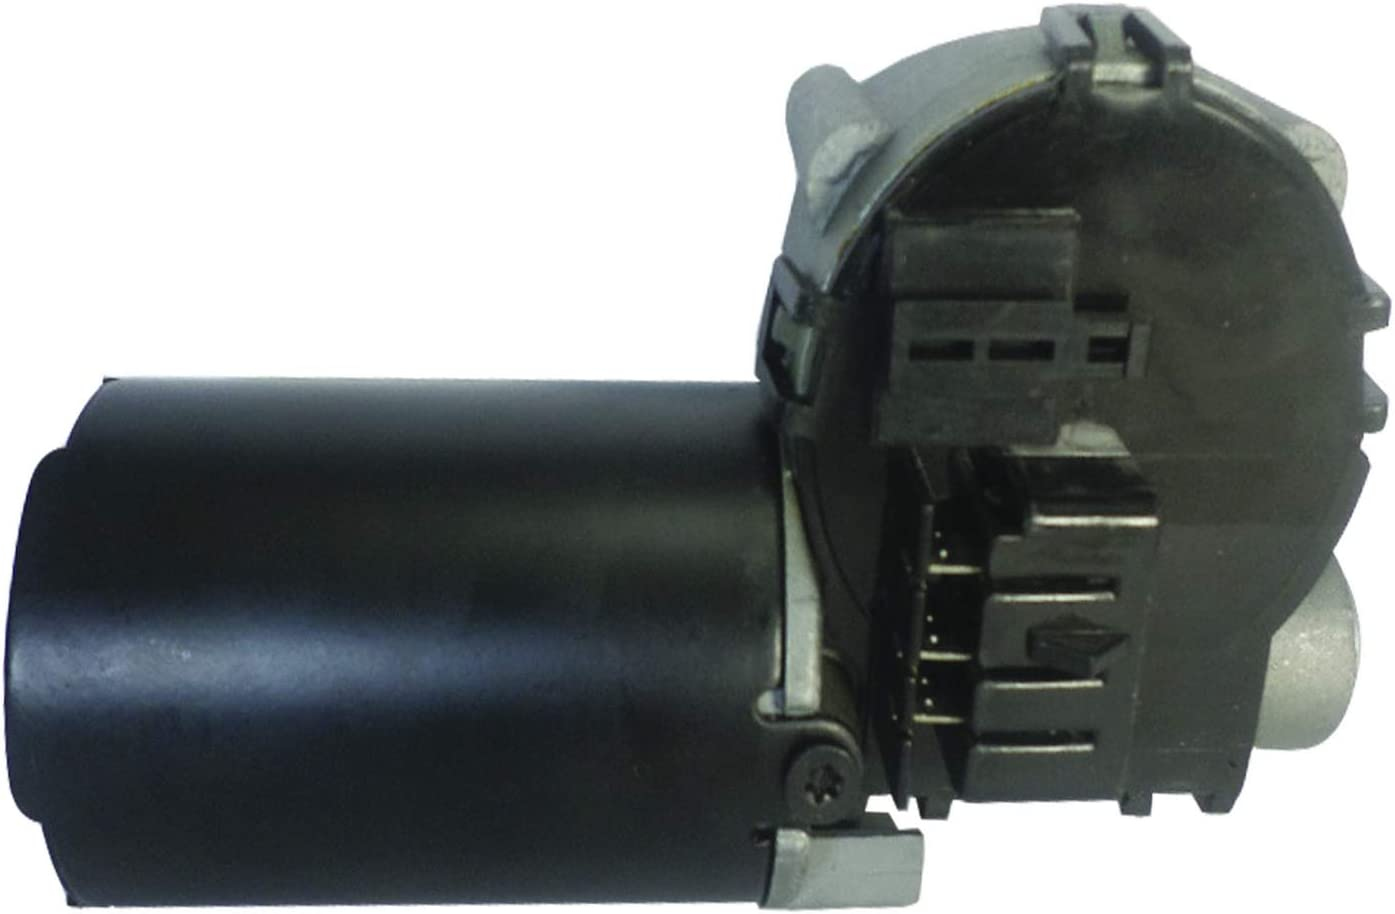 NEW FRONT WIPER MOTOR FITS FORD MUSTANG 1987-1993 *2-YEAR WARRANTY